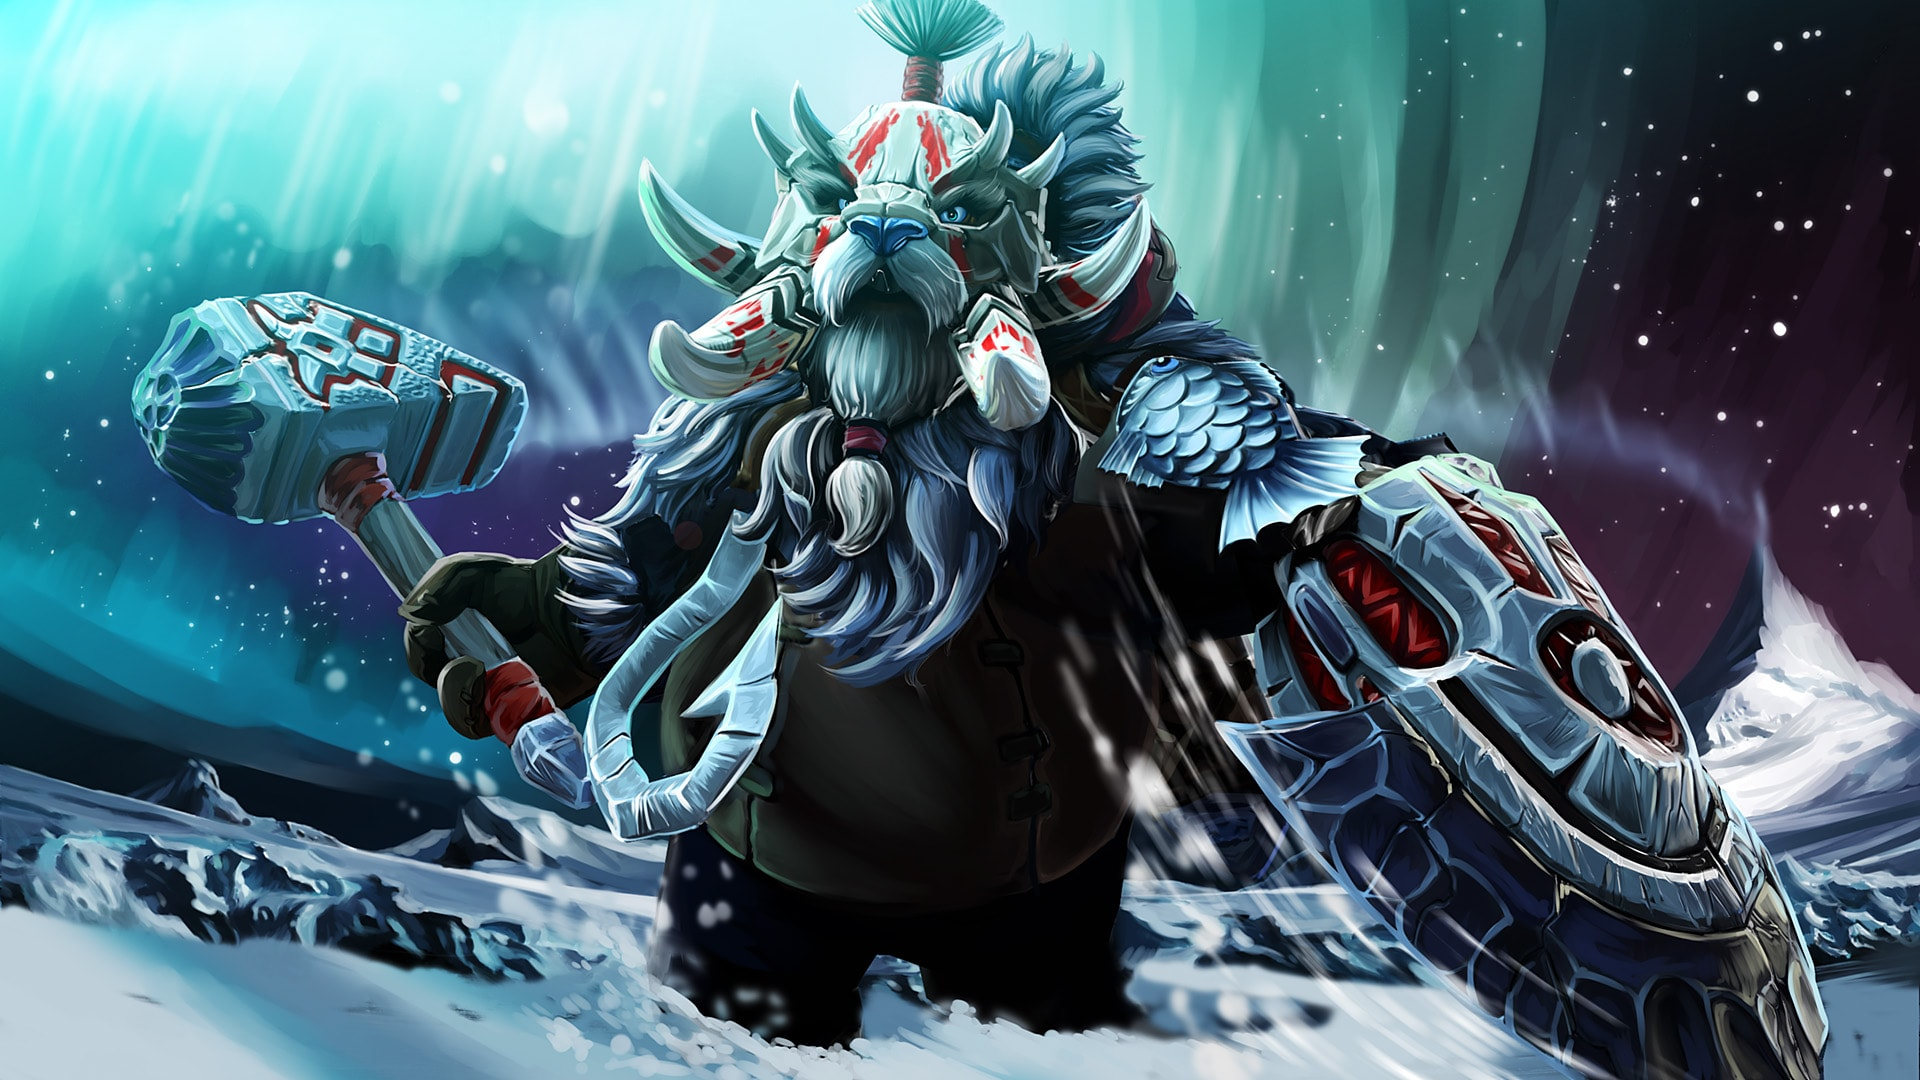 23+ Tusk Dota 2 Wallpaper Hd JPG